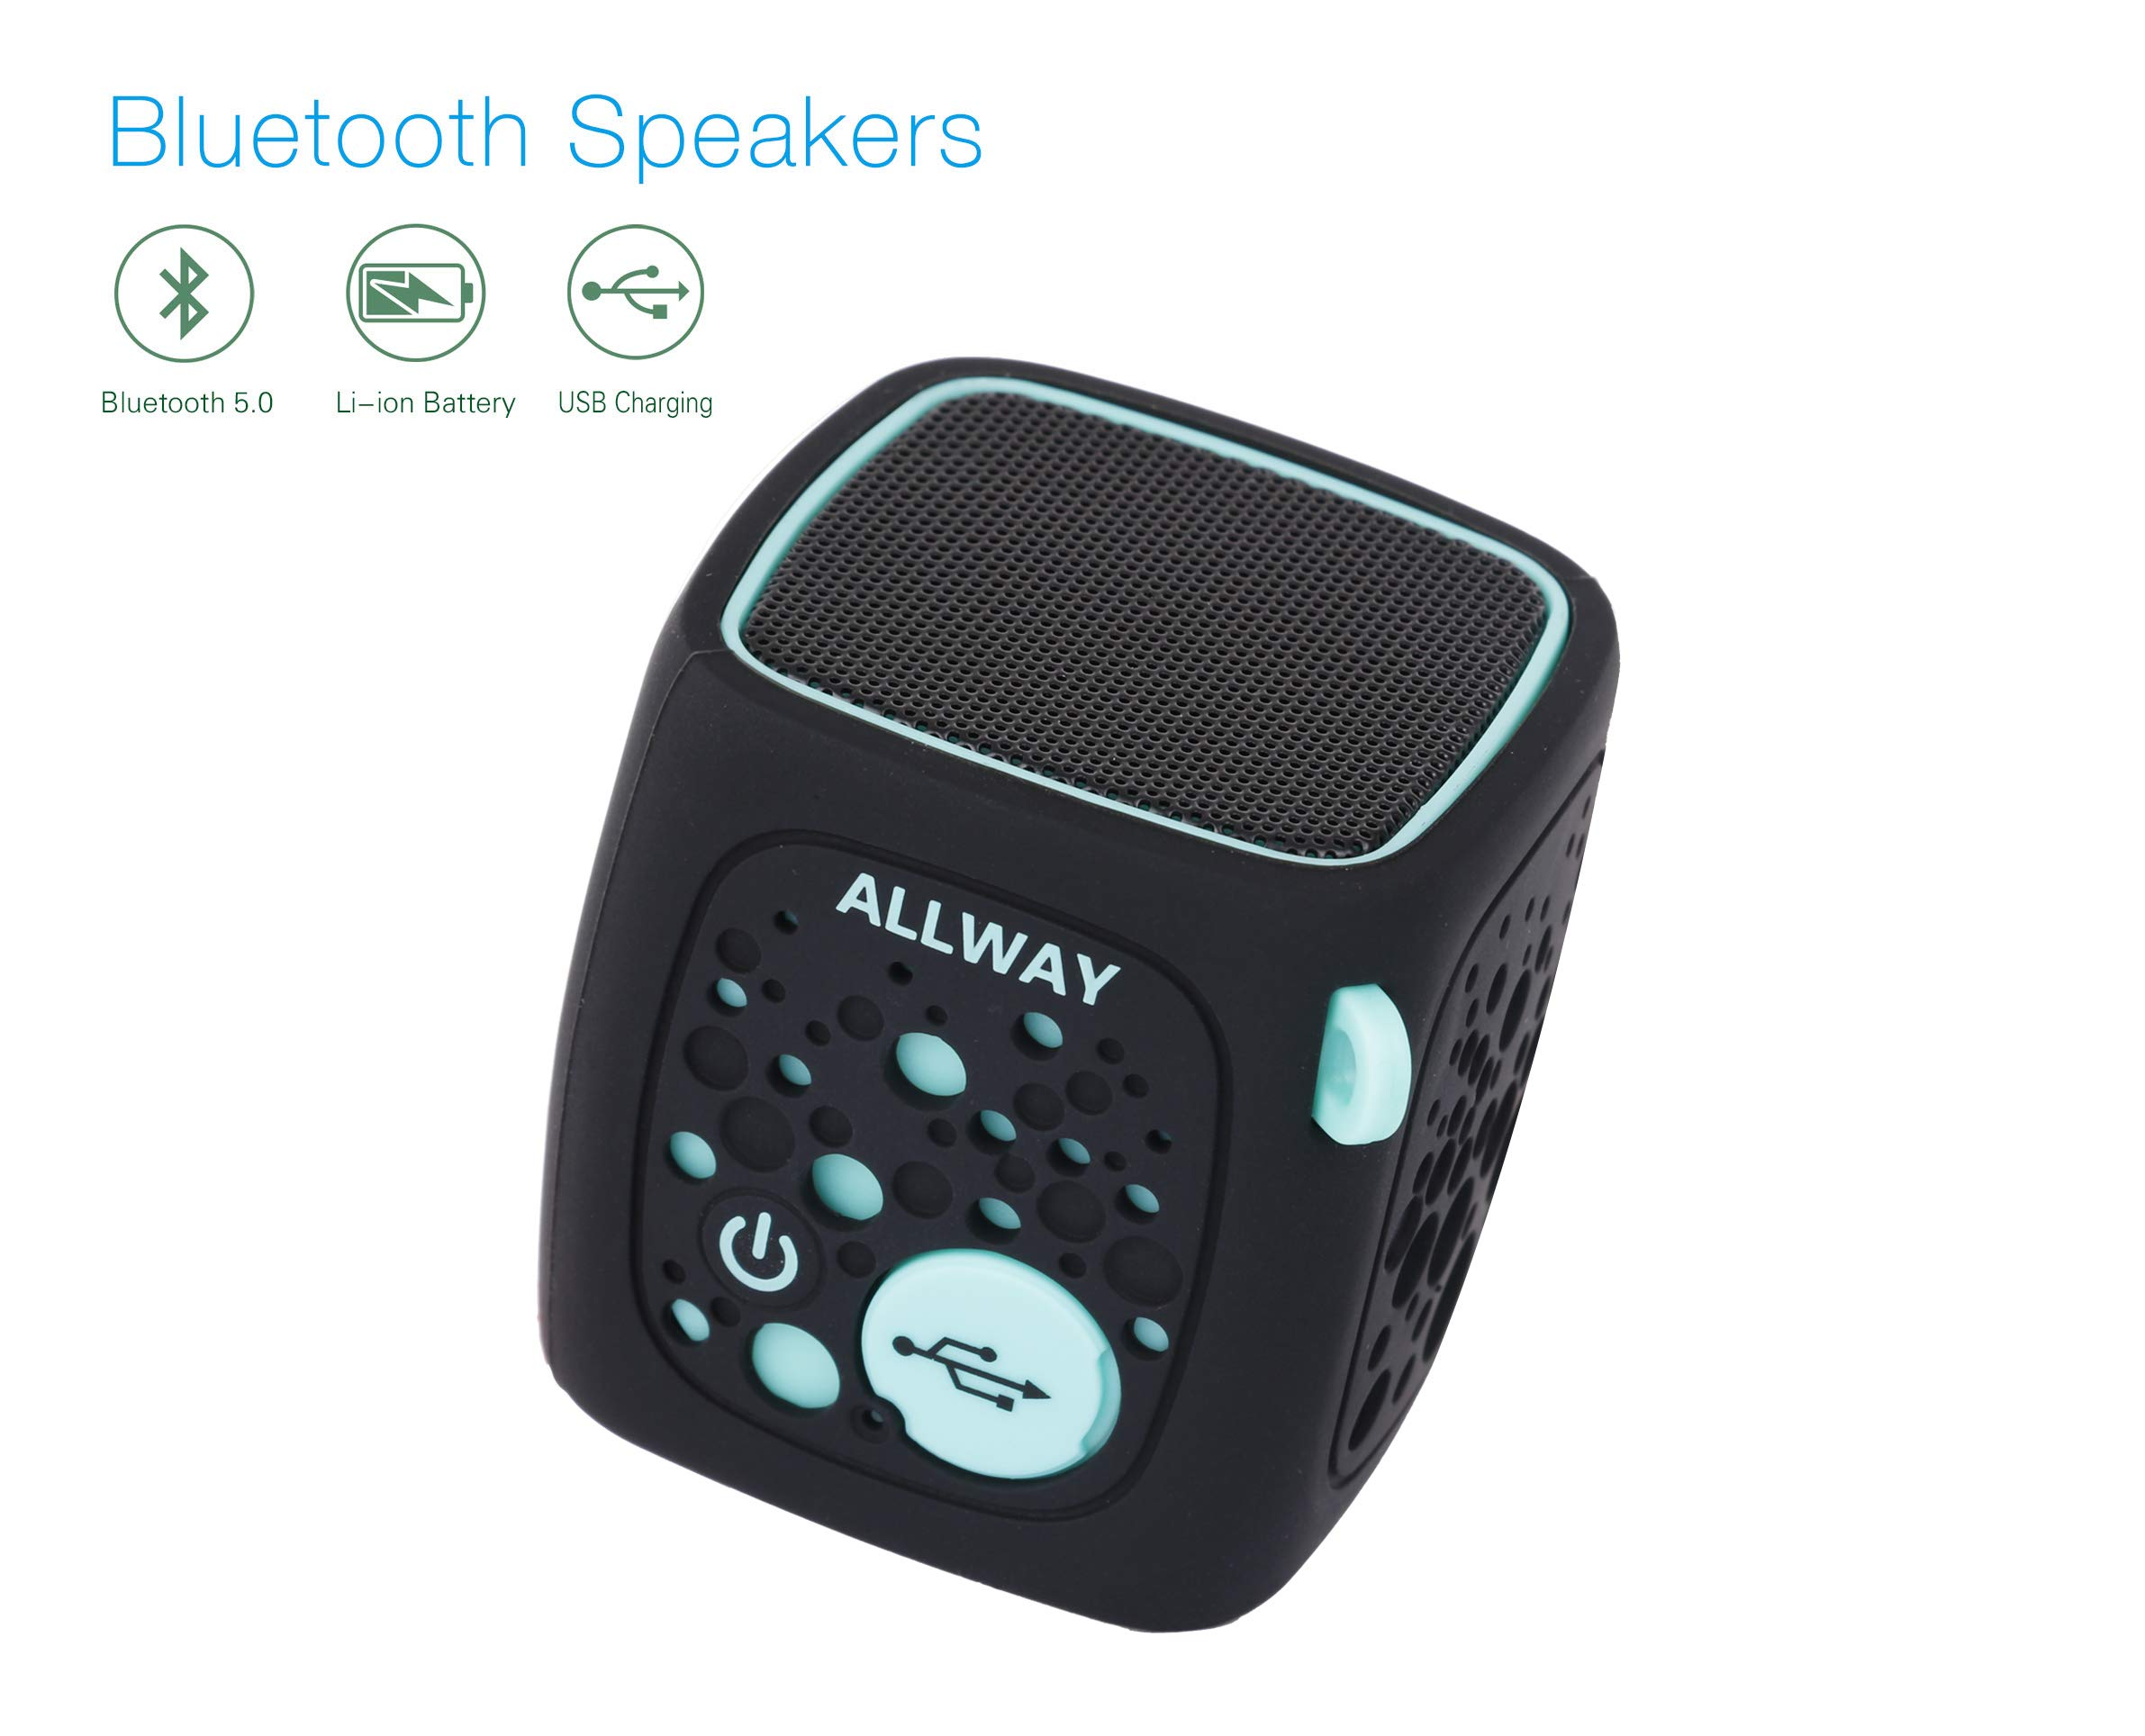 Small Bluetooth Speaker,ALLWAY Ultra Compact Mini Portable Bluetooth Speakers with Loud Stereo Sound,Rich bass,TF Card Port,164 Feet Bluetooth 5.0 Range for Laptop,iPhone,Echo,Car and More